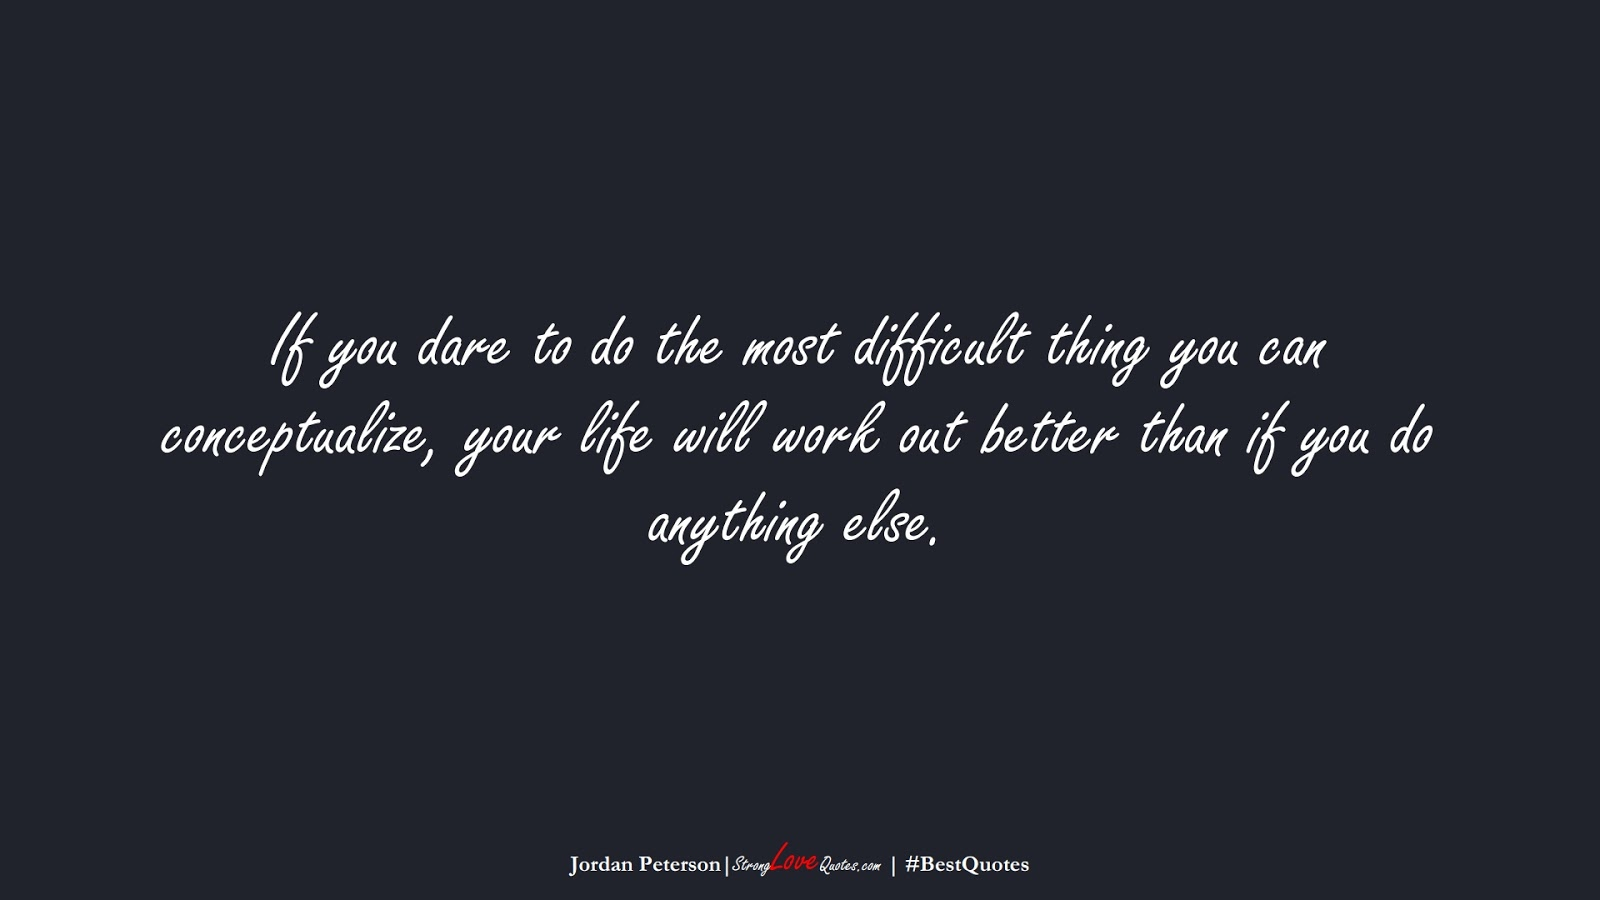 If you dare to do the most difficult thing you can conceptualize, your life will work out better than if you do anything else. (Jordan Peterson);  #BestQuotes